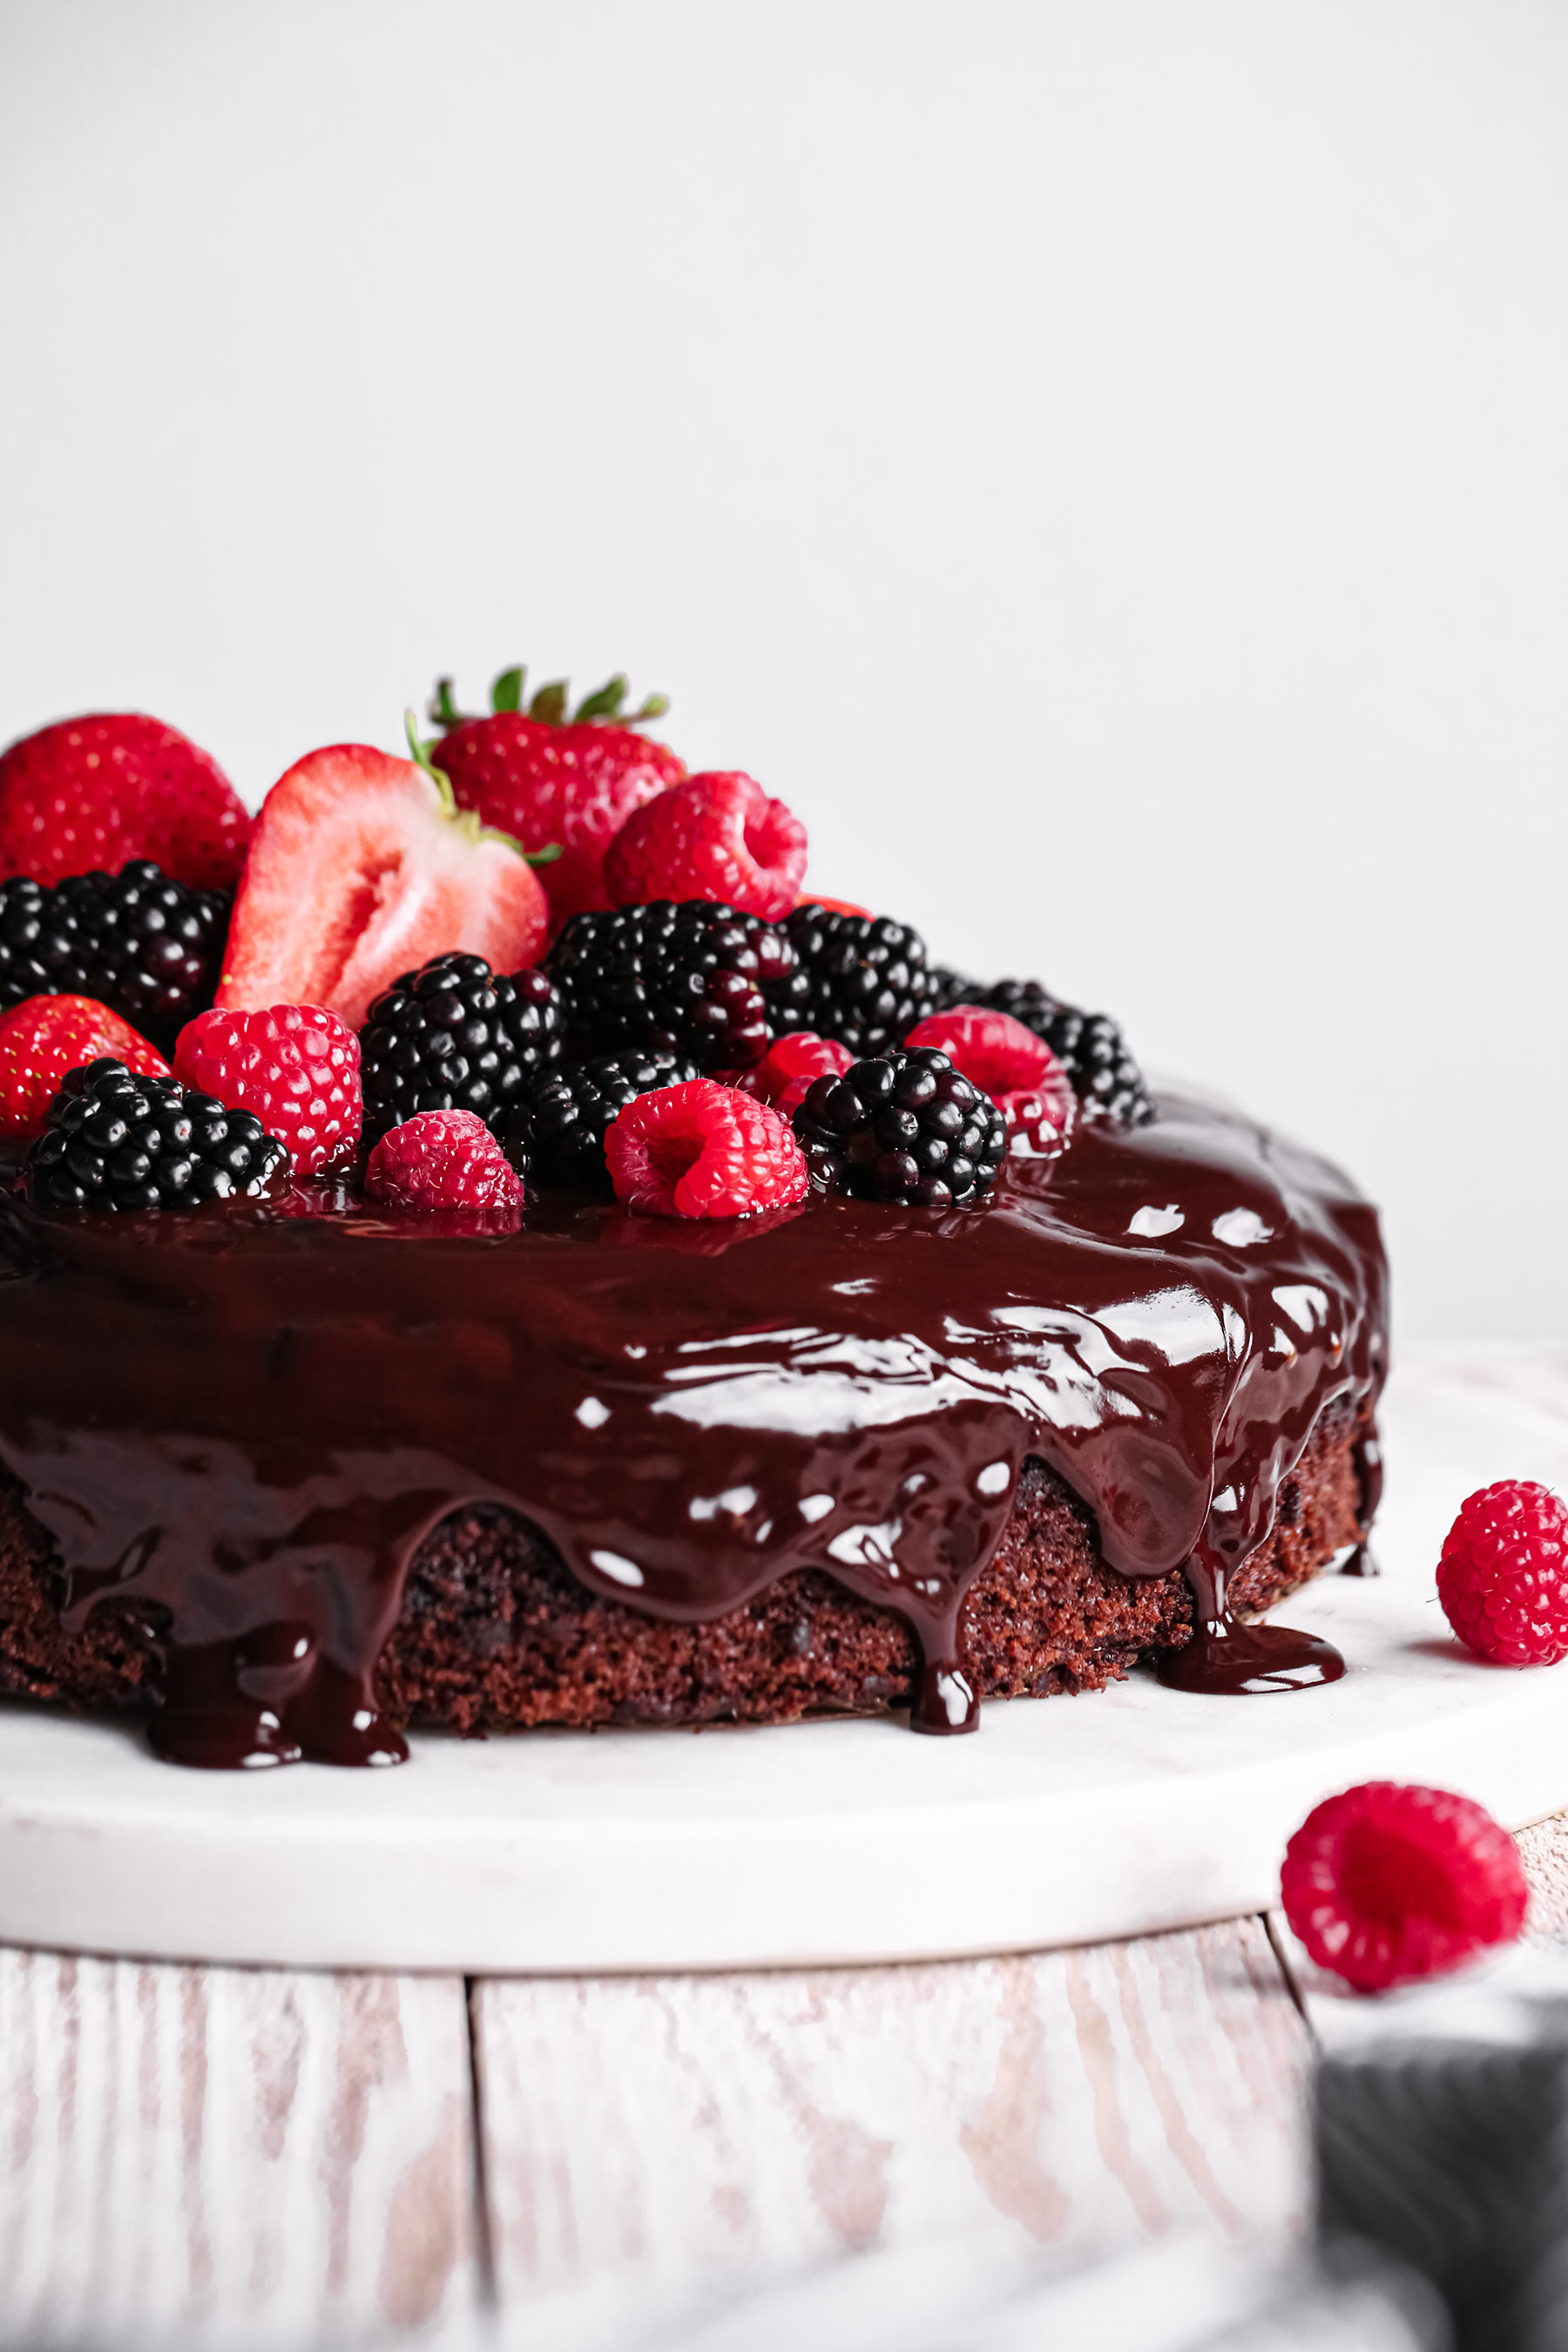 Simple Chocolate Fudge Cake | Vegan friendly with gluten free option.